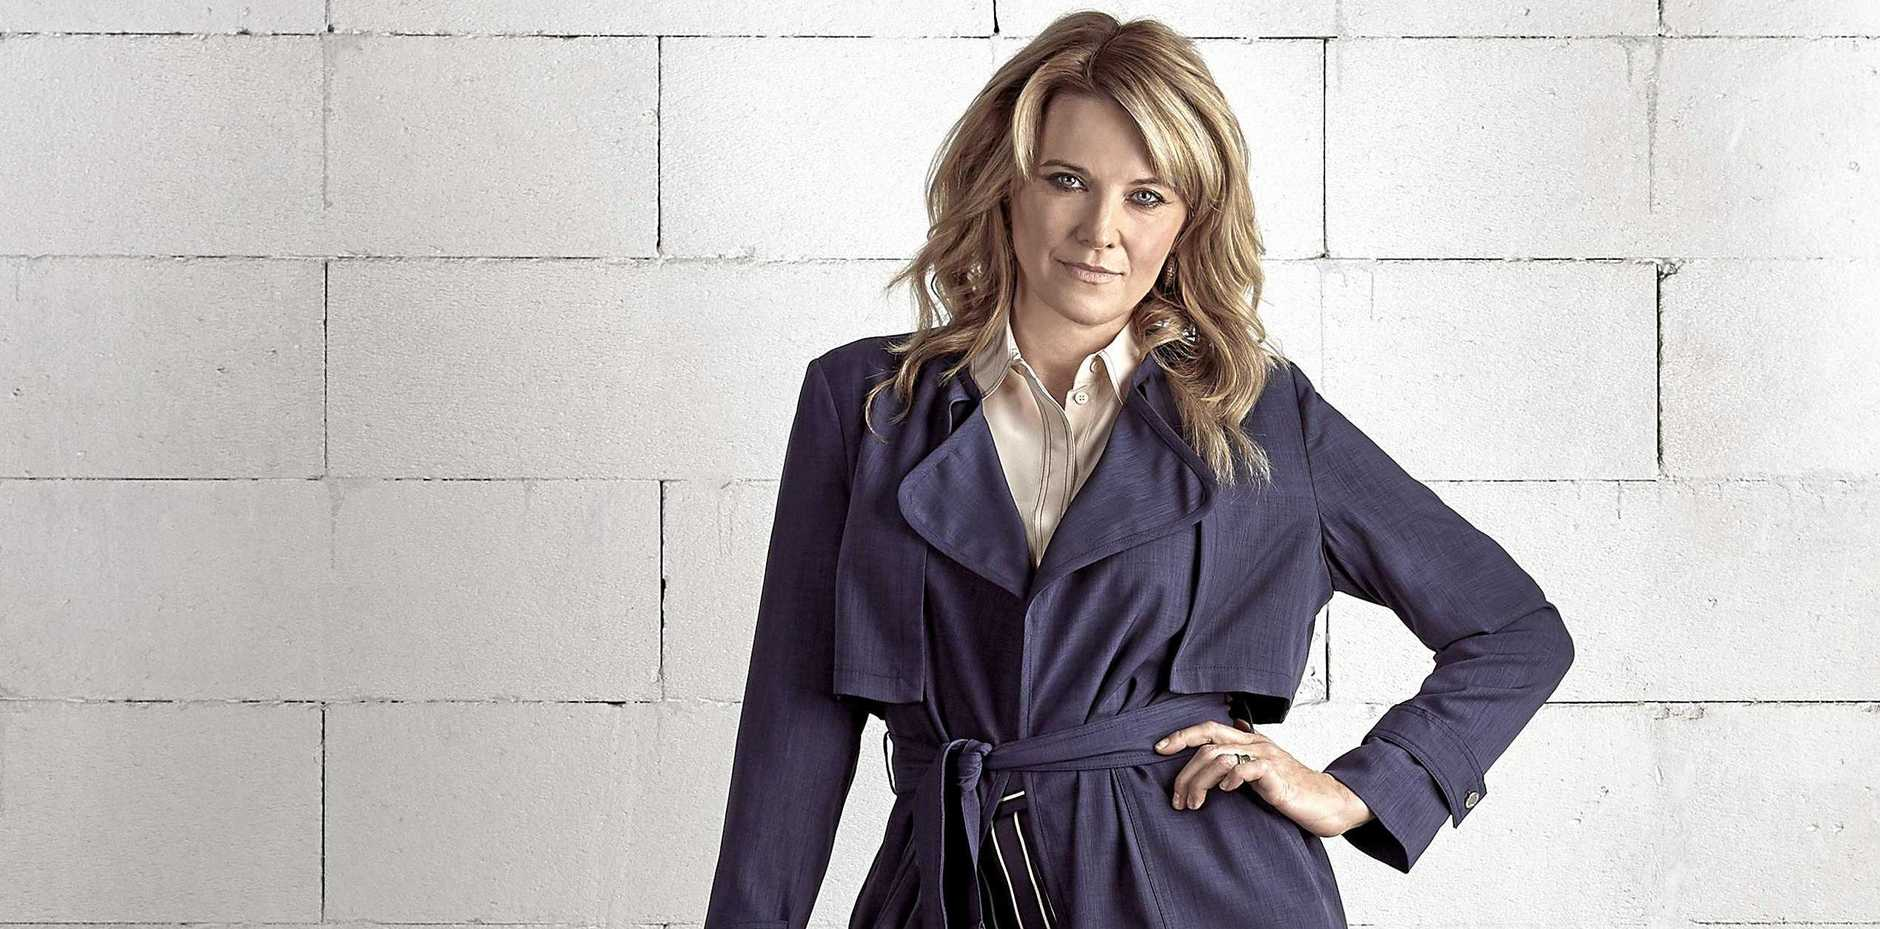 Lucy Lawless stars in the new Aussie crime drama My Life Is Murder.